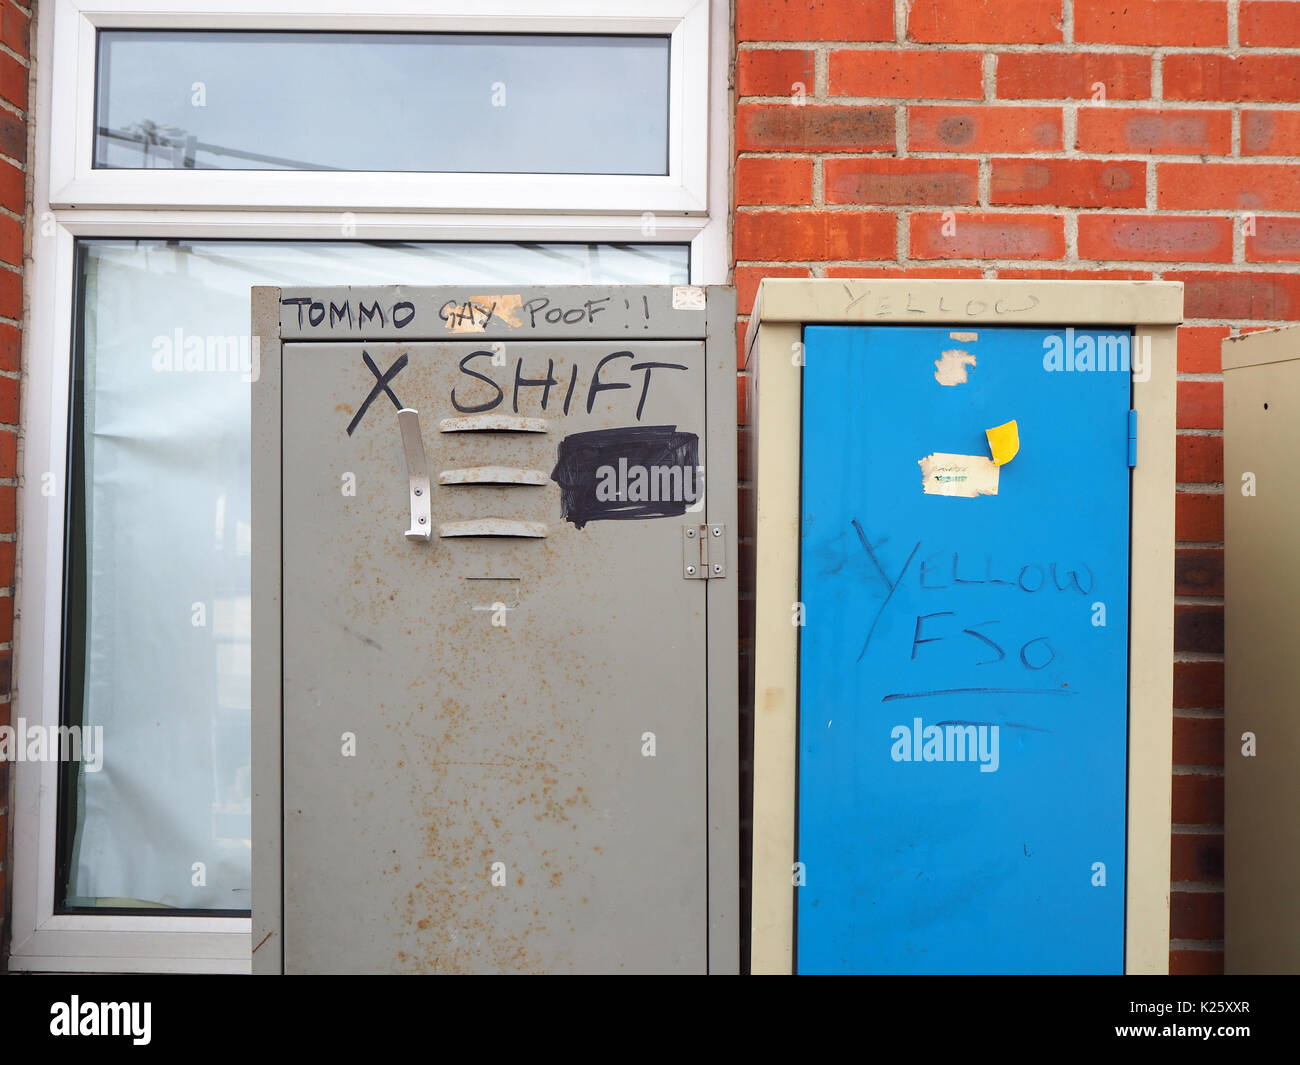 Changing room cabinets with homophobic graffiti - Stock Image